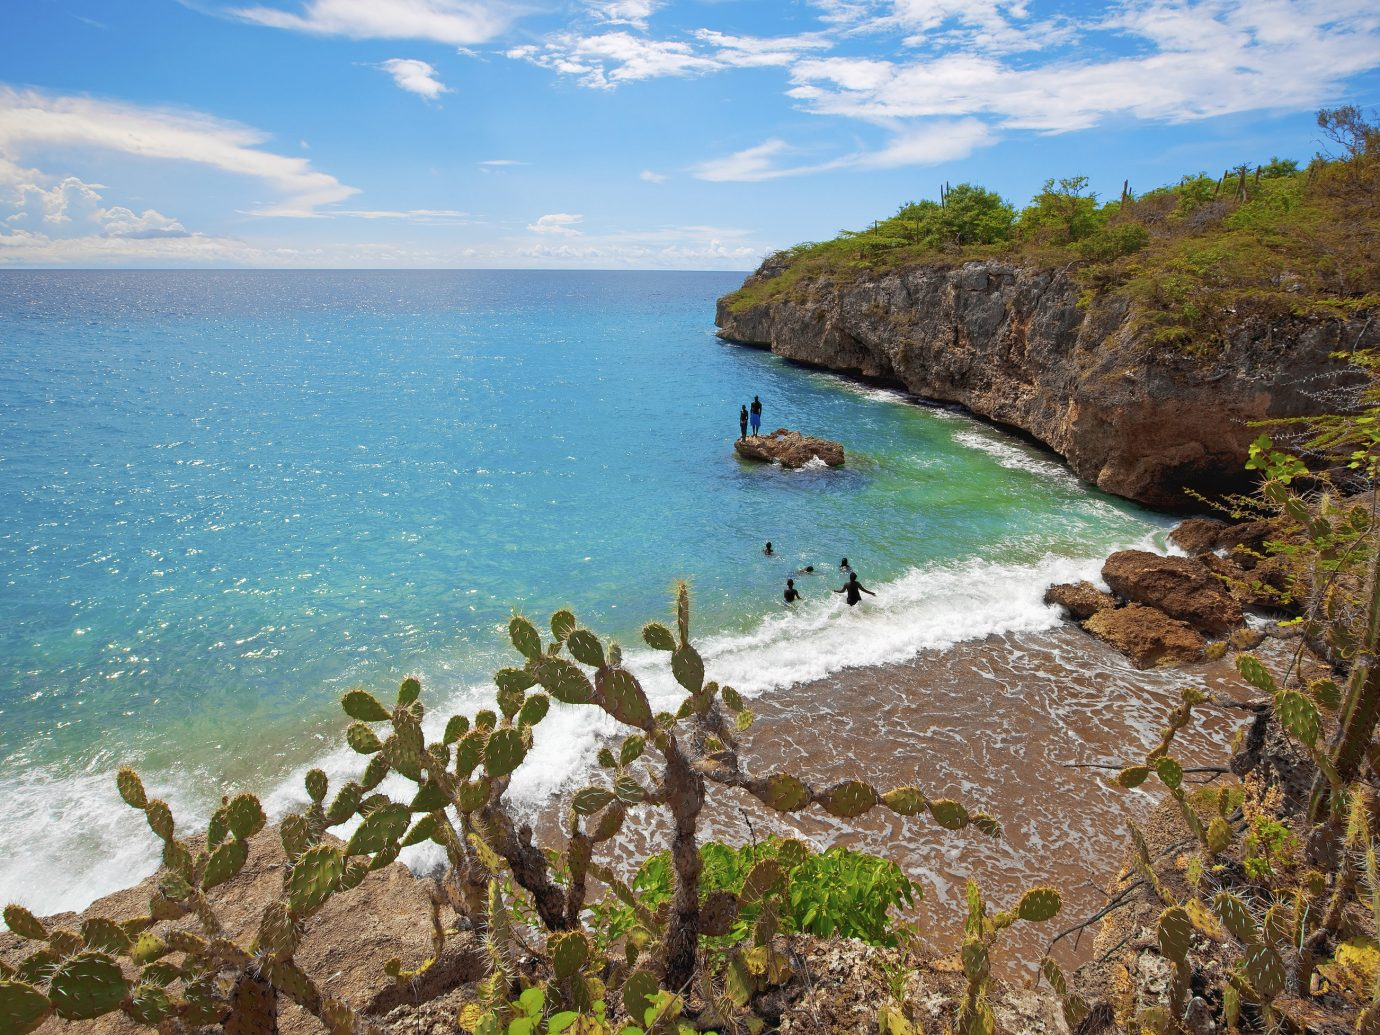 Beaches caribbean Trip Ideas water outdoor Nature Coast rock geographical feature landform Sea body of water shore Beach cliff Ocean vacation bay cove cape terrain islet Island tropics Lagoon